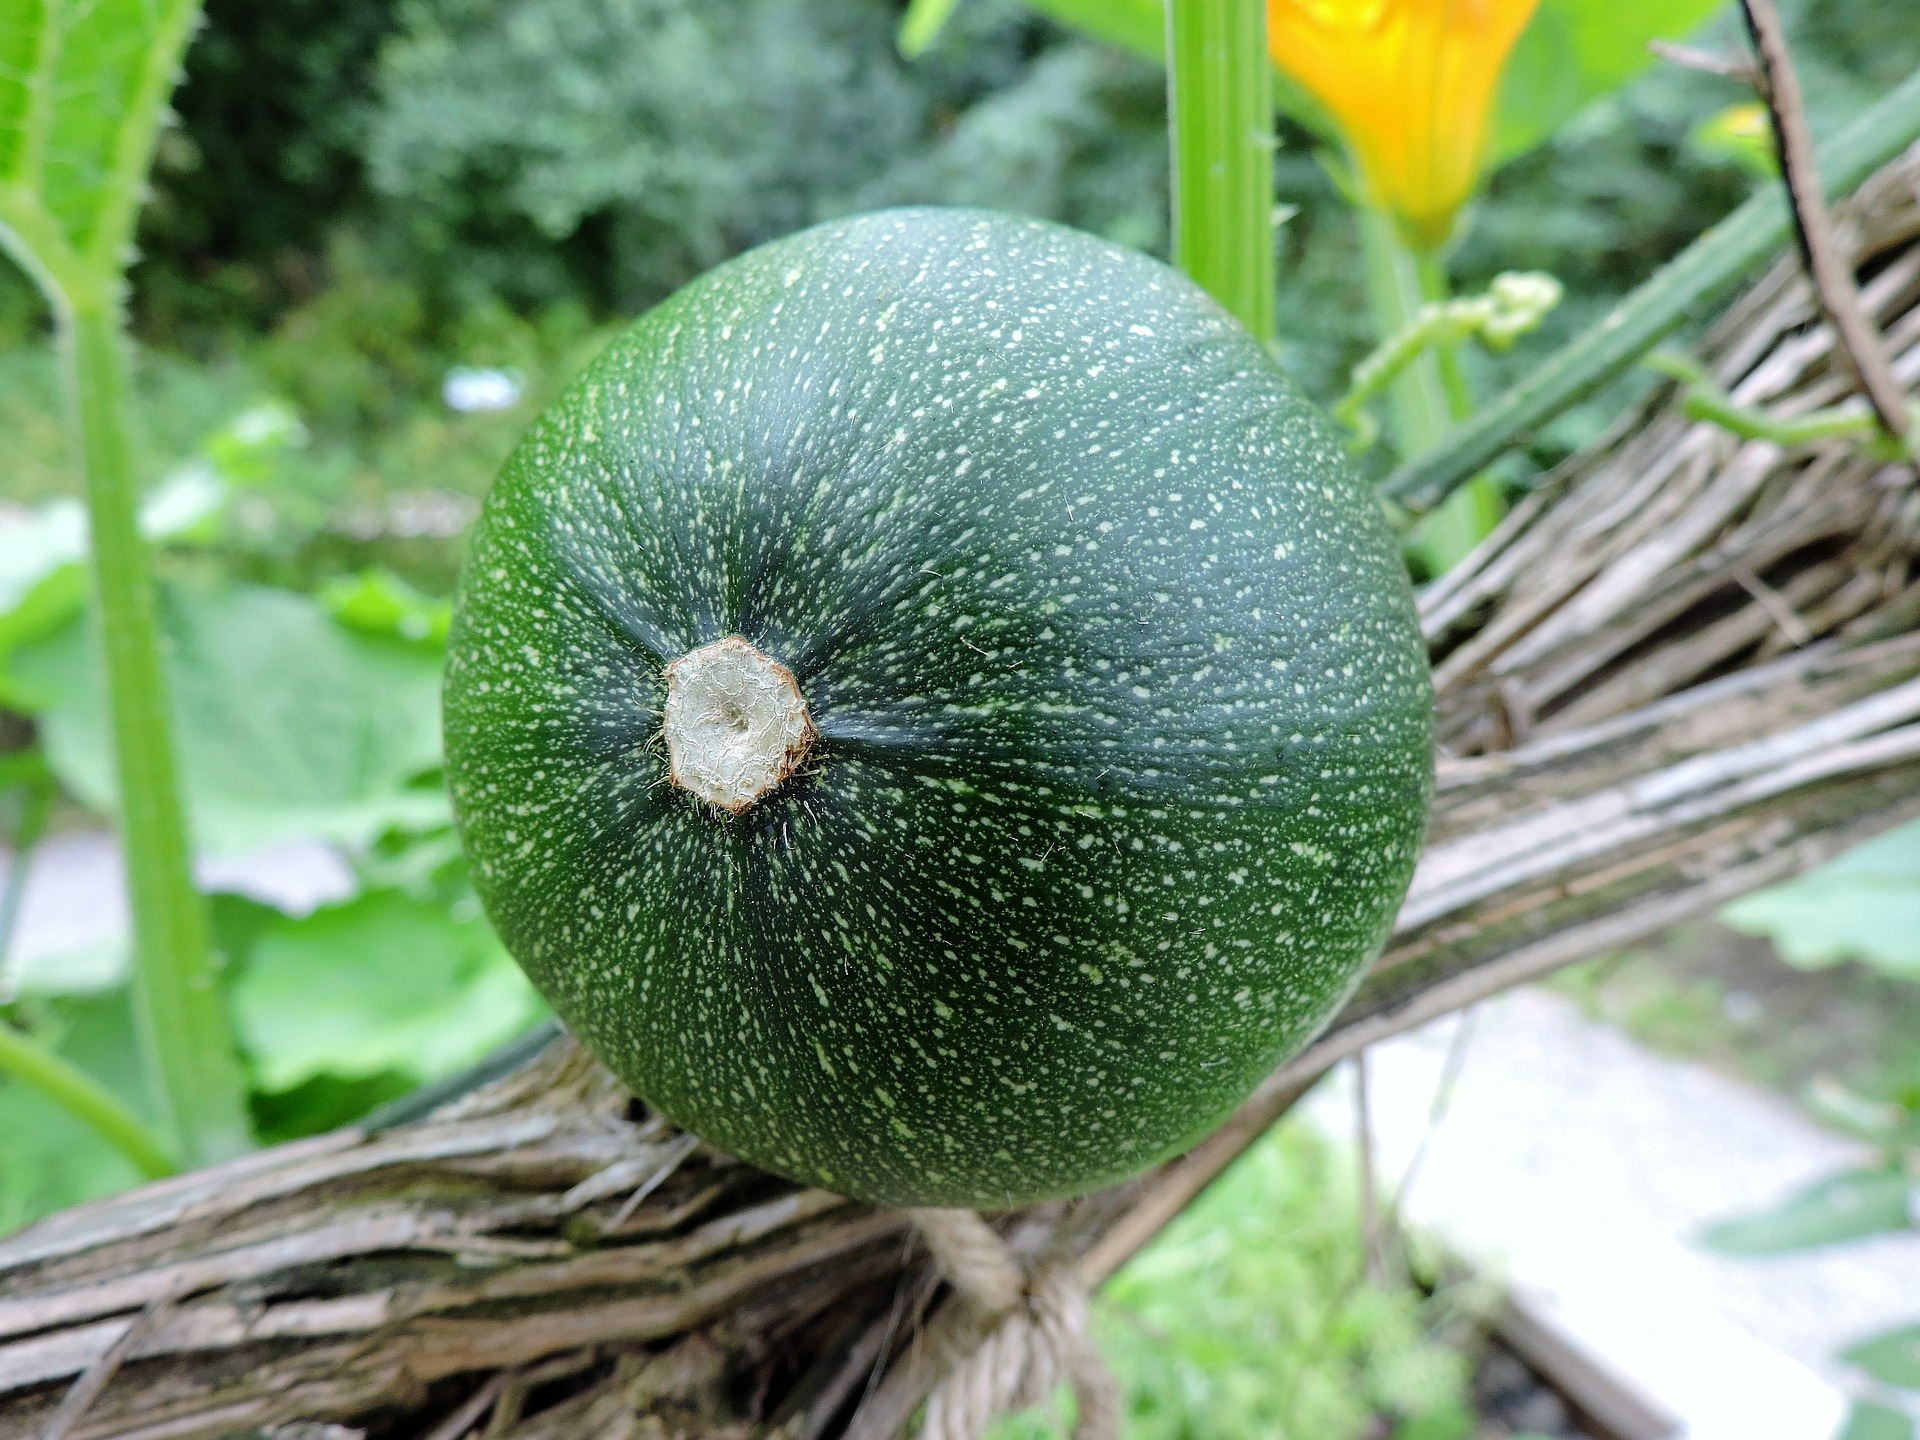 round zucchini growing